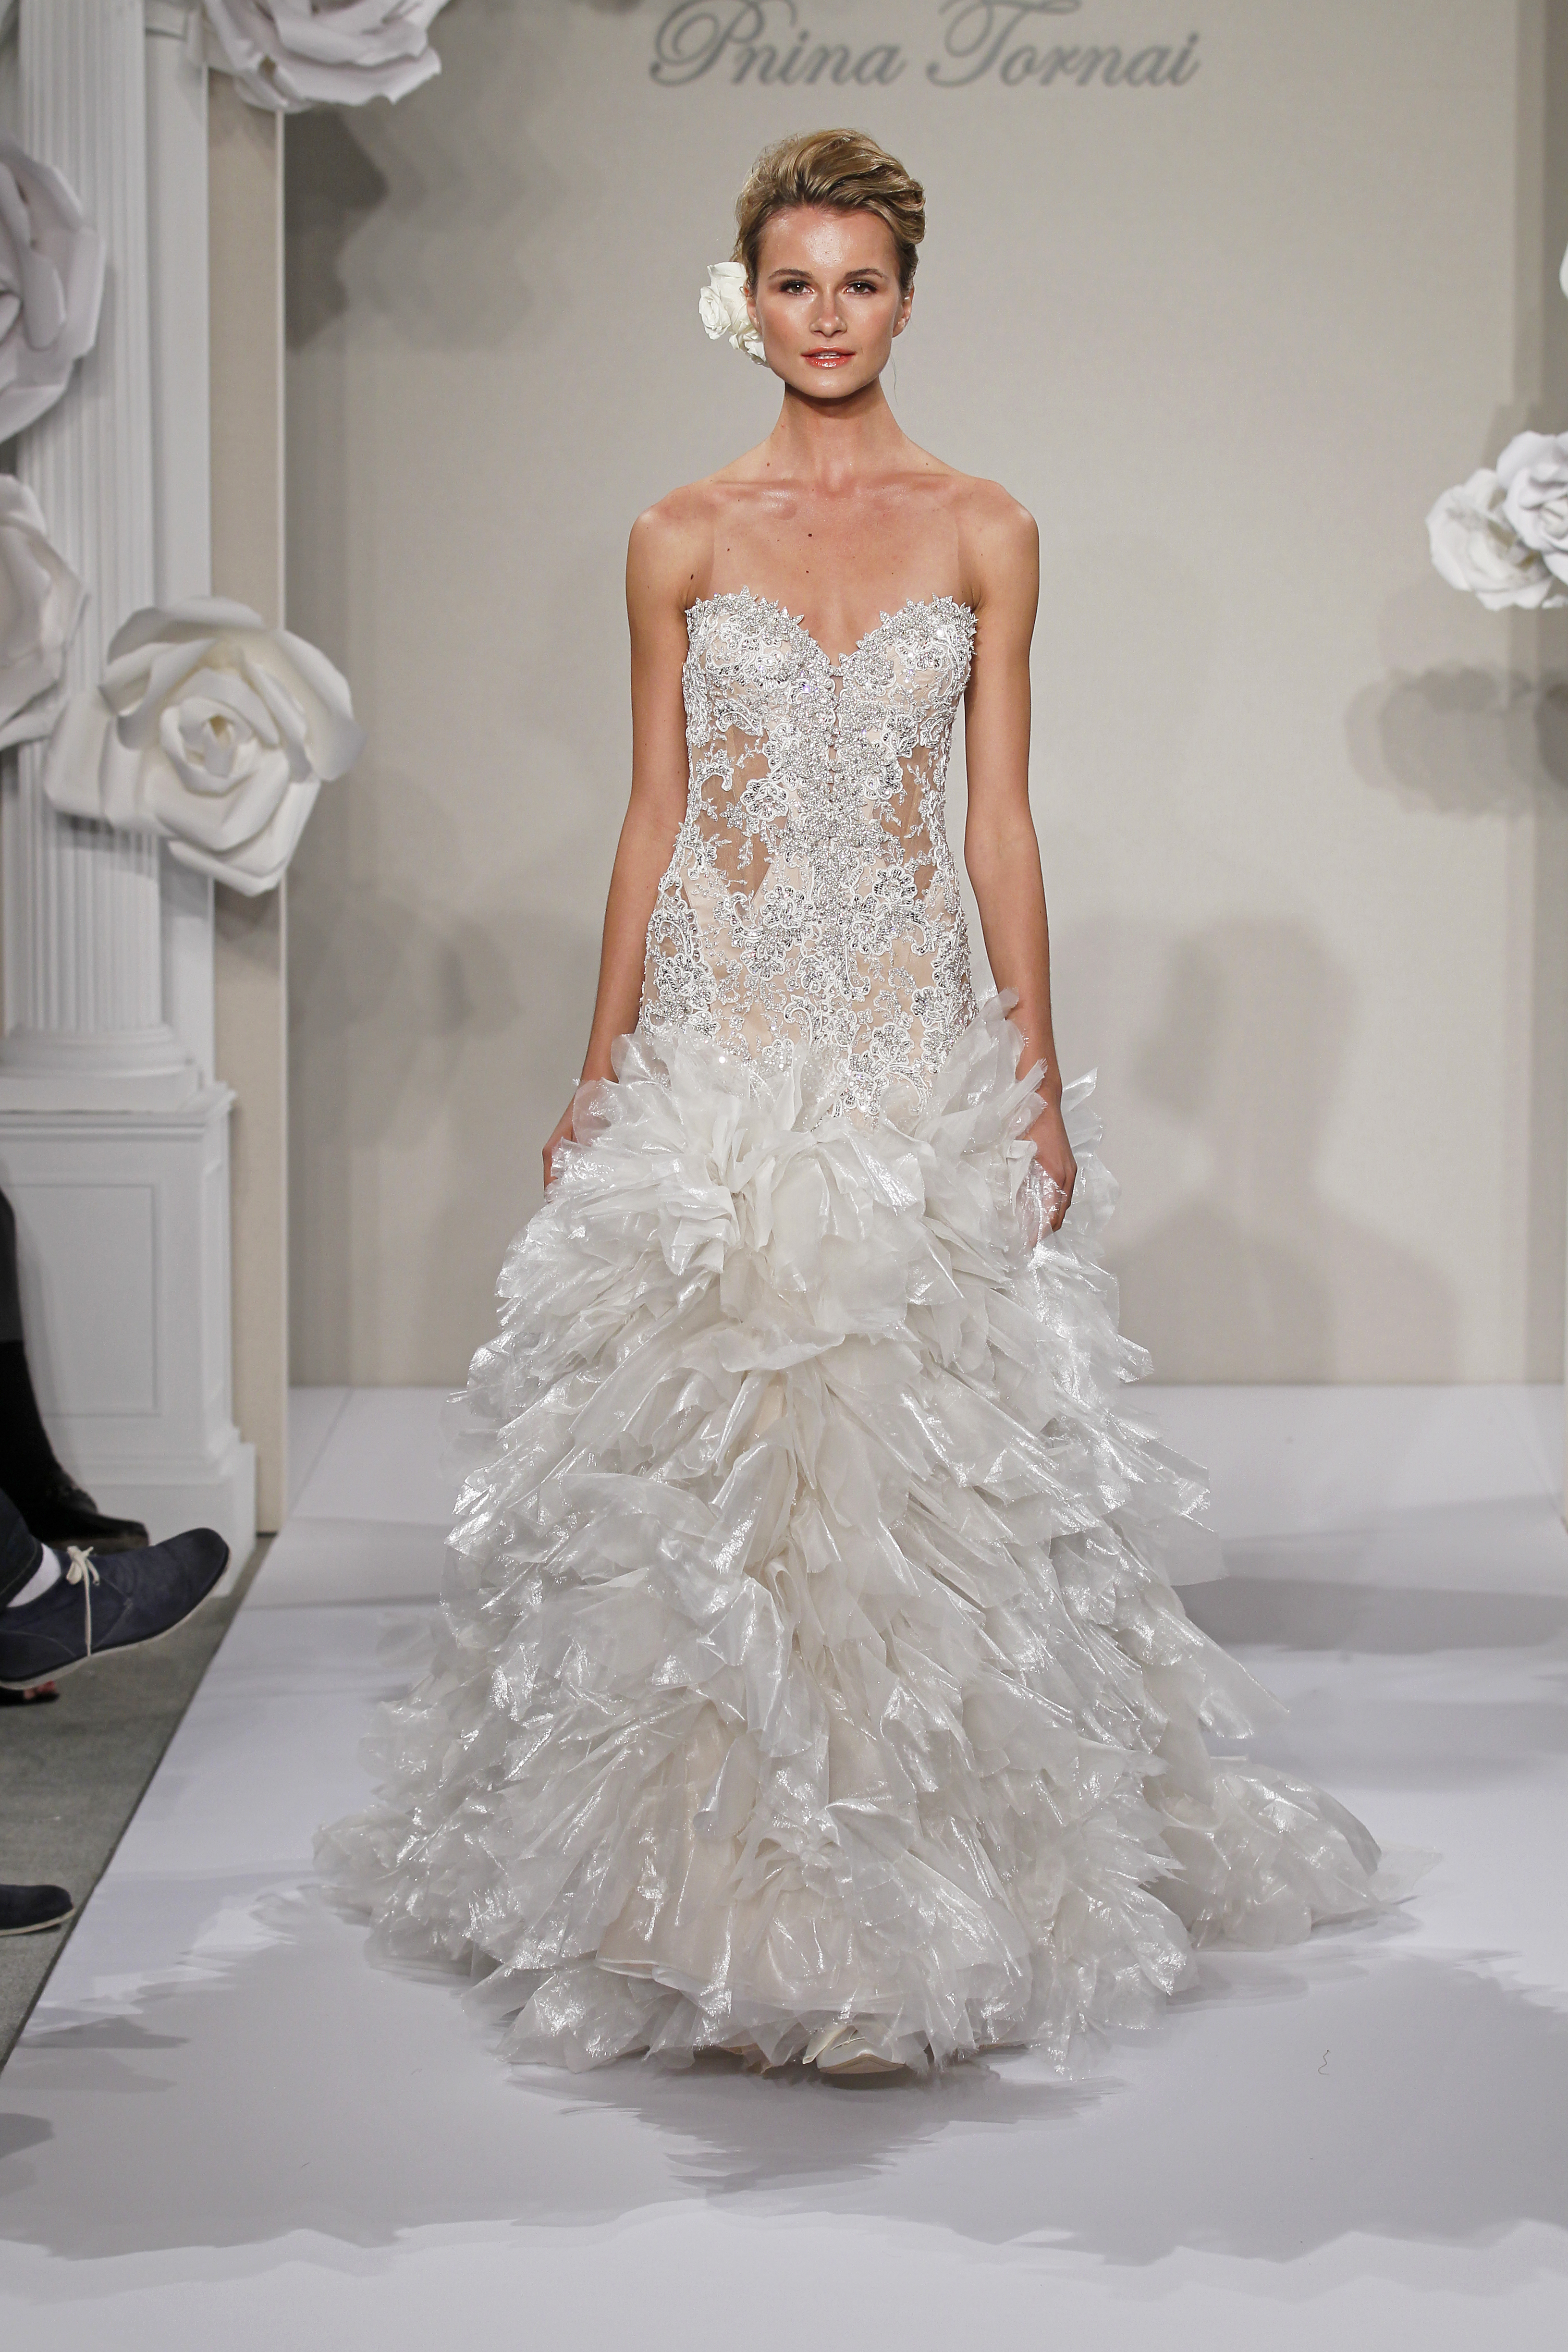 Wedding Dresses, Sweetheart Wedding Dresses, A-line Wedding Dresses, Ball Gown Wedding Dresses, Ruffled Wedding Dresses, Romantic Wedding Dresses, Hollywood Glam Wedding Dresses, Fashion, white, ivory, Shabby Chic, Romantic, Sweetheart, A-line, Beading, Floor, Formal, Natural, Silk, Ruffles, Sleeveless, Pnina tornai, Ball gown, Avant-Garde, hollywood glam, Beaded Wedding Dresses, Formal Wedding Dresses, Silk Wedding Dresses, Floor Wedding Dresses, Shabby Chic Wedding Dresses